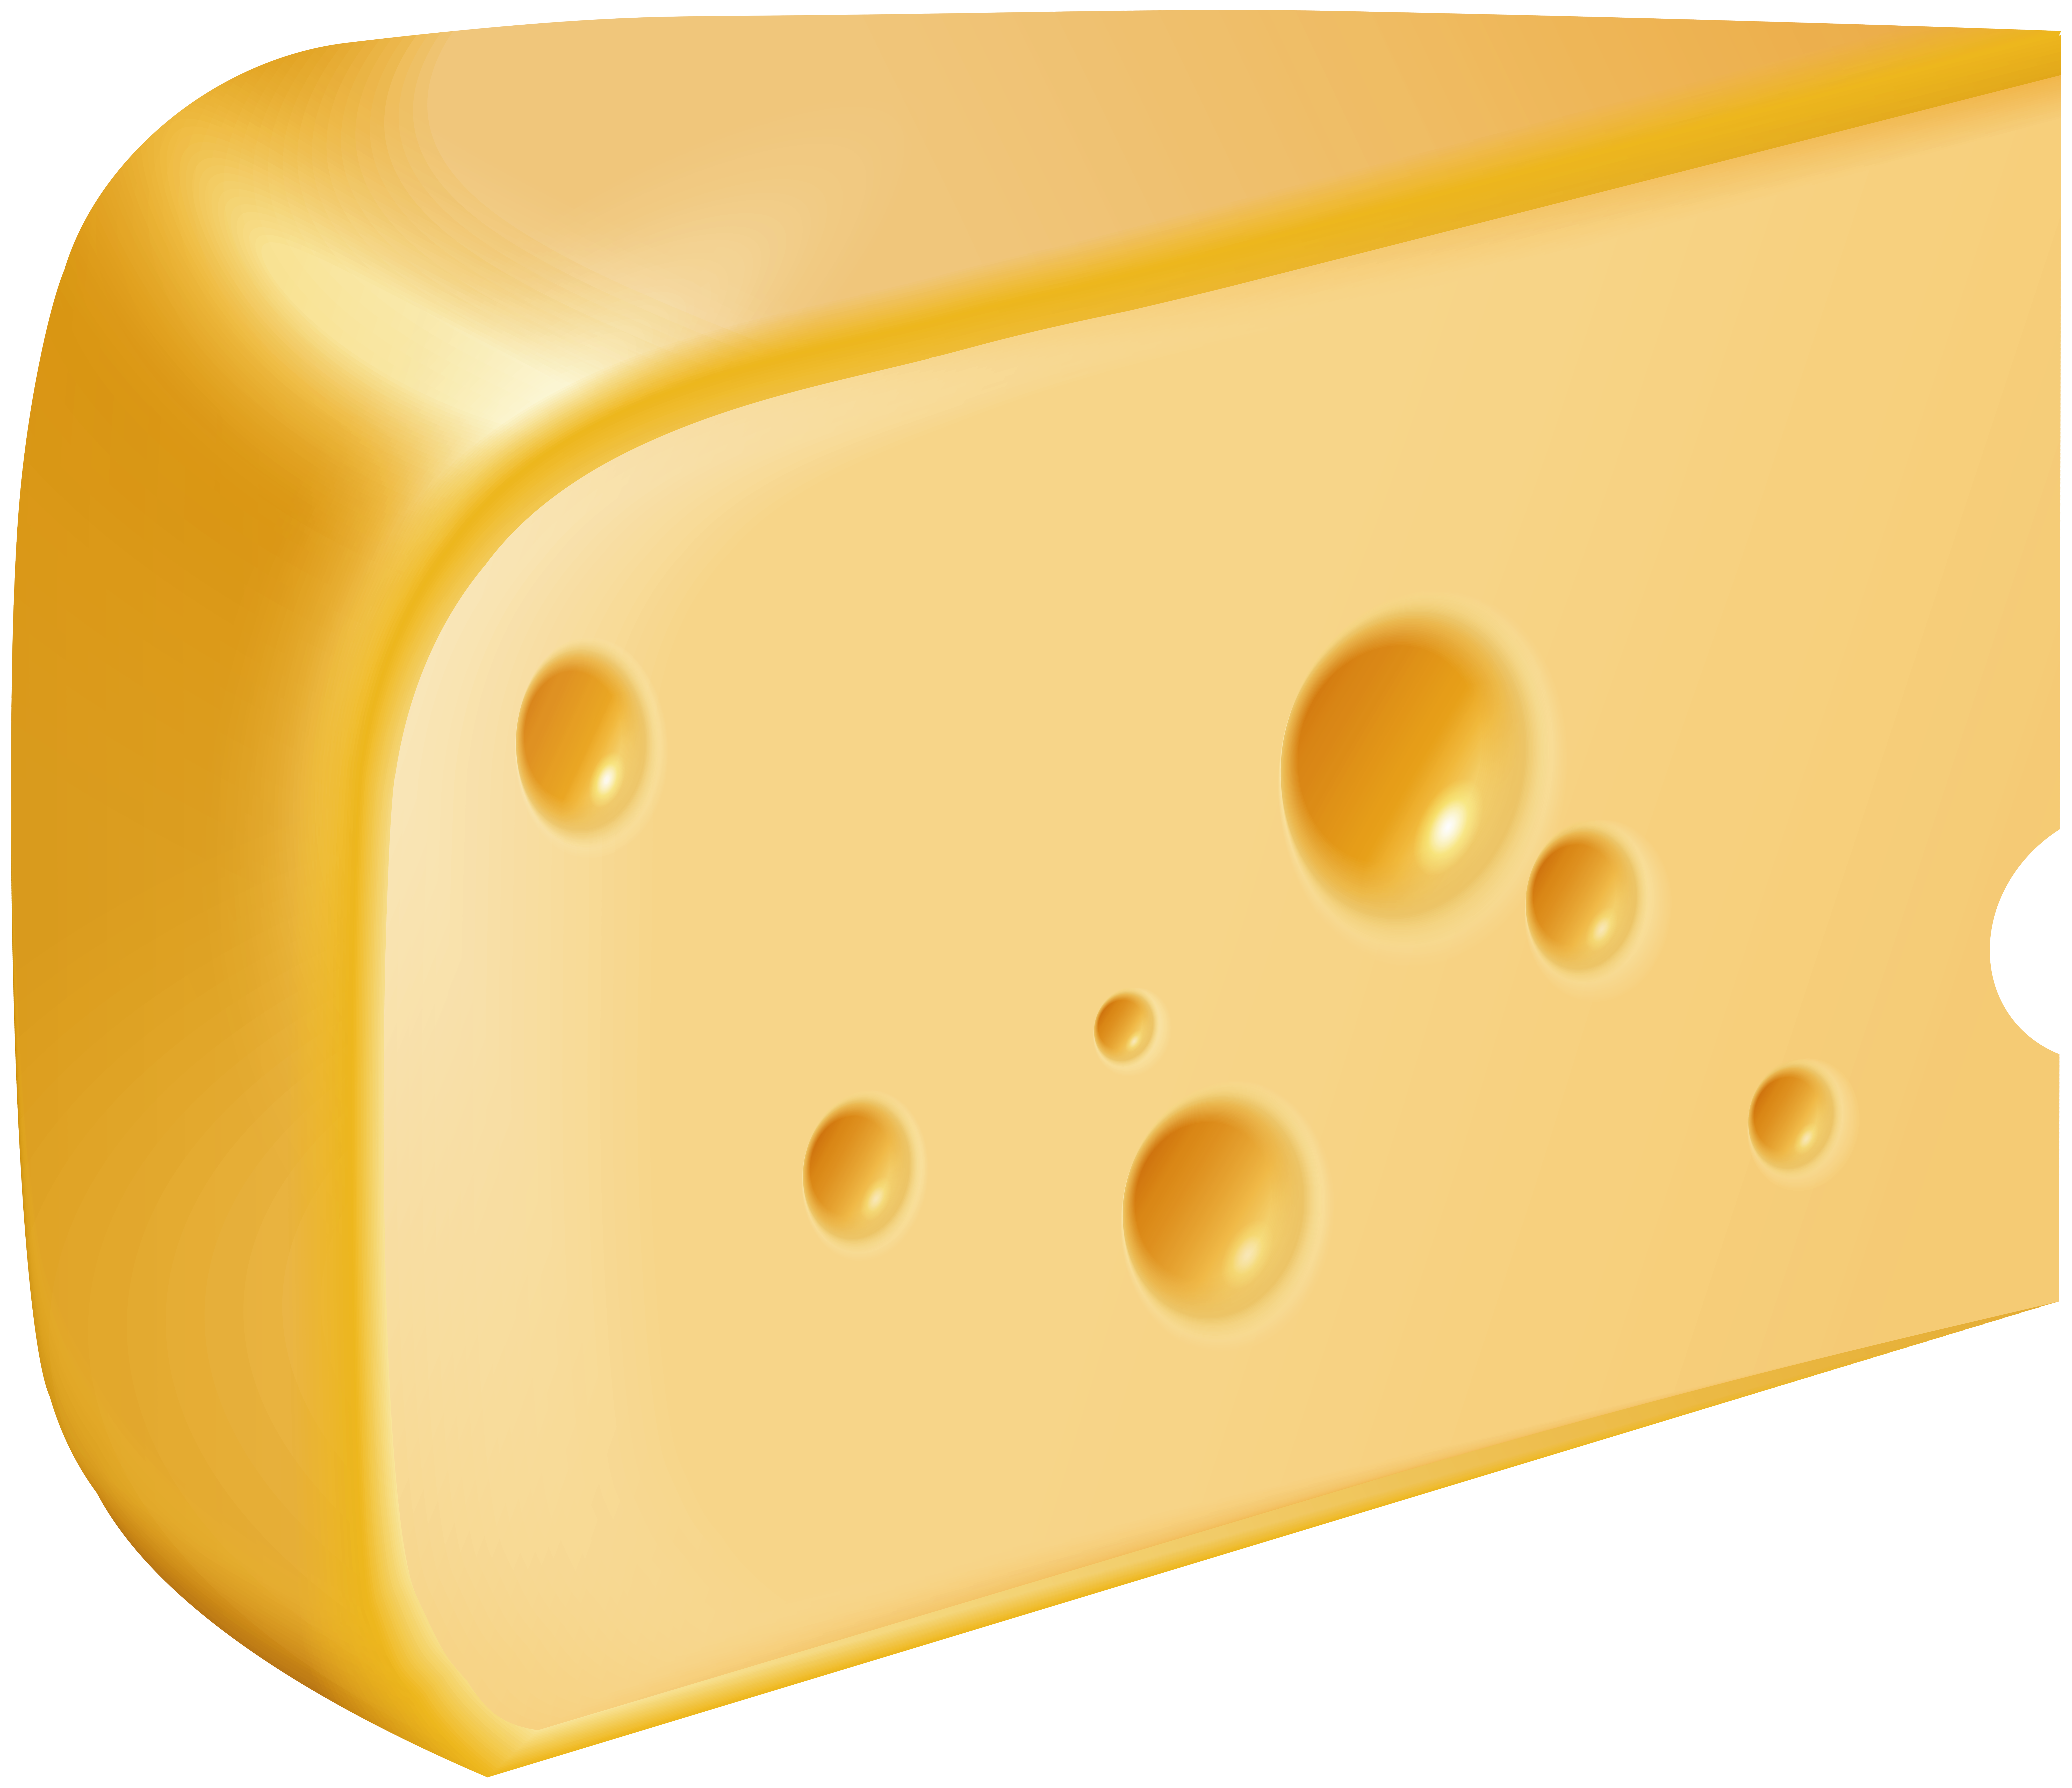 A piece of cheese clipart png library stock Piece Of Cheese PNG Clip Art - Best WEB Clipart png library stock